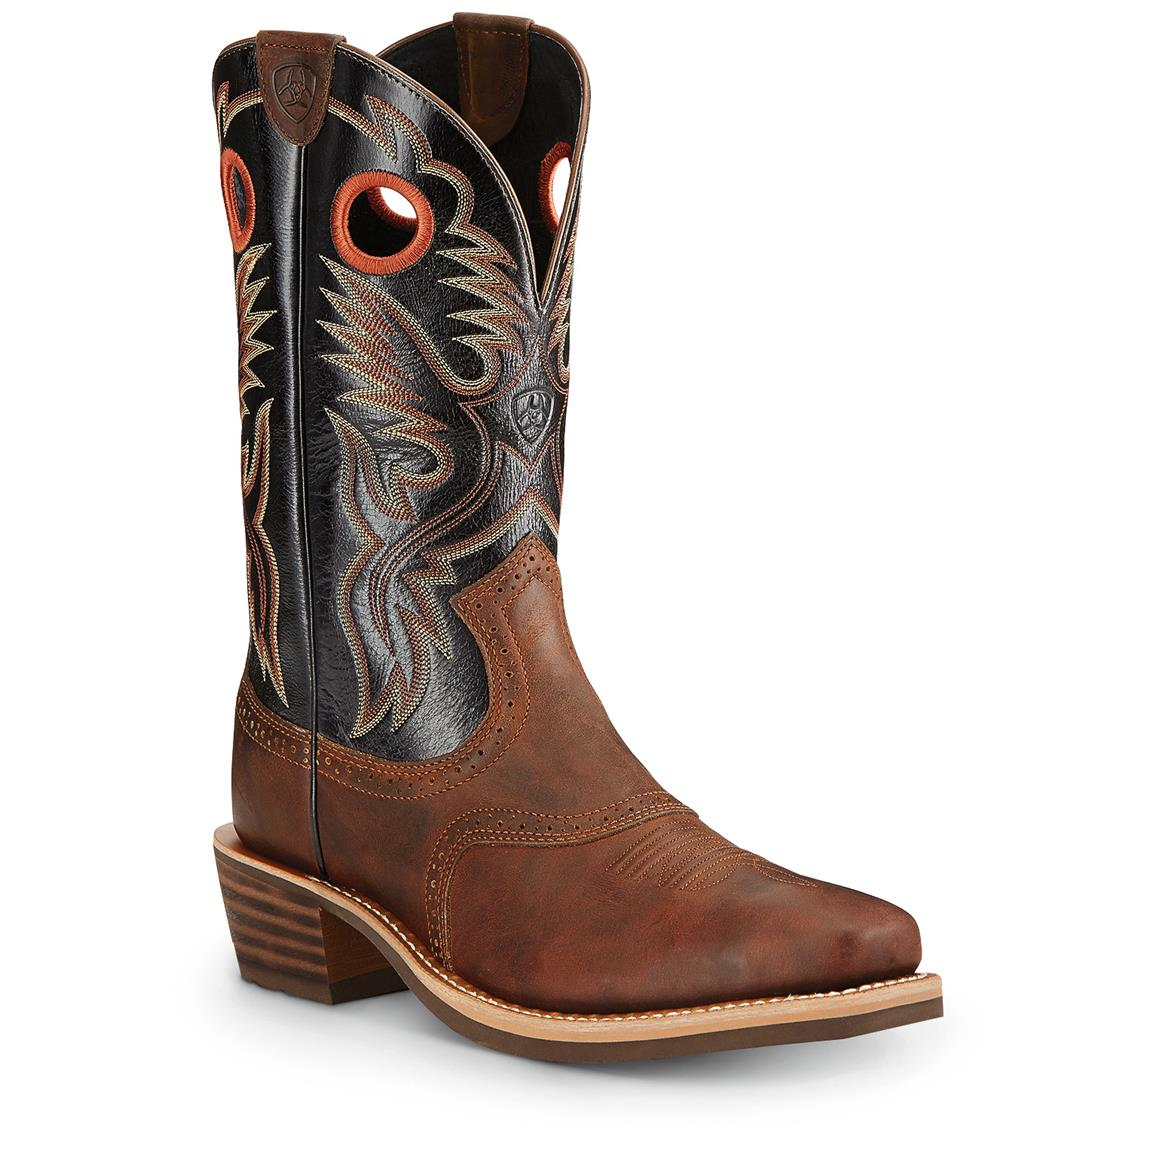 Ariat Men's Roughstock Cowboy Boots, Bar Top Brown / Black